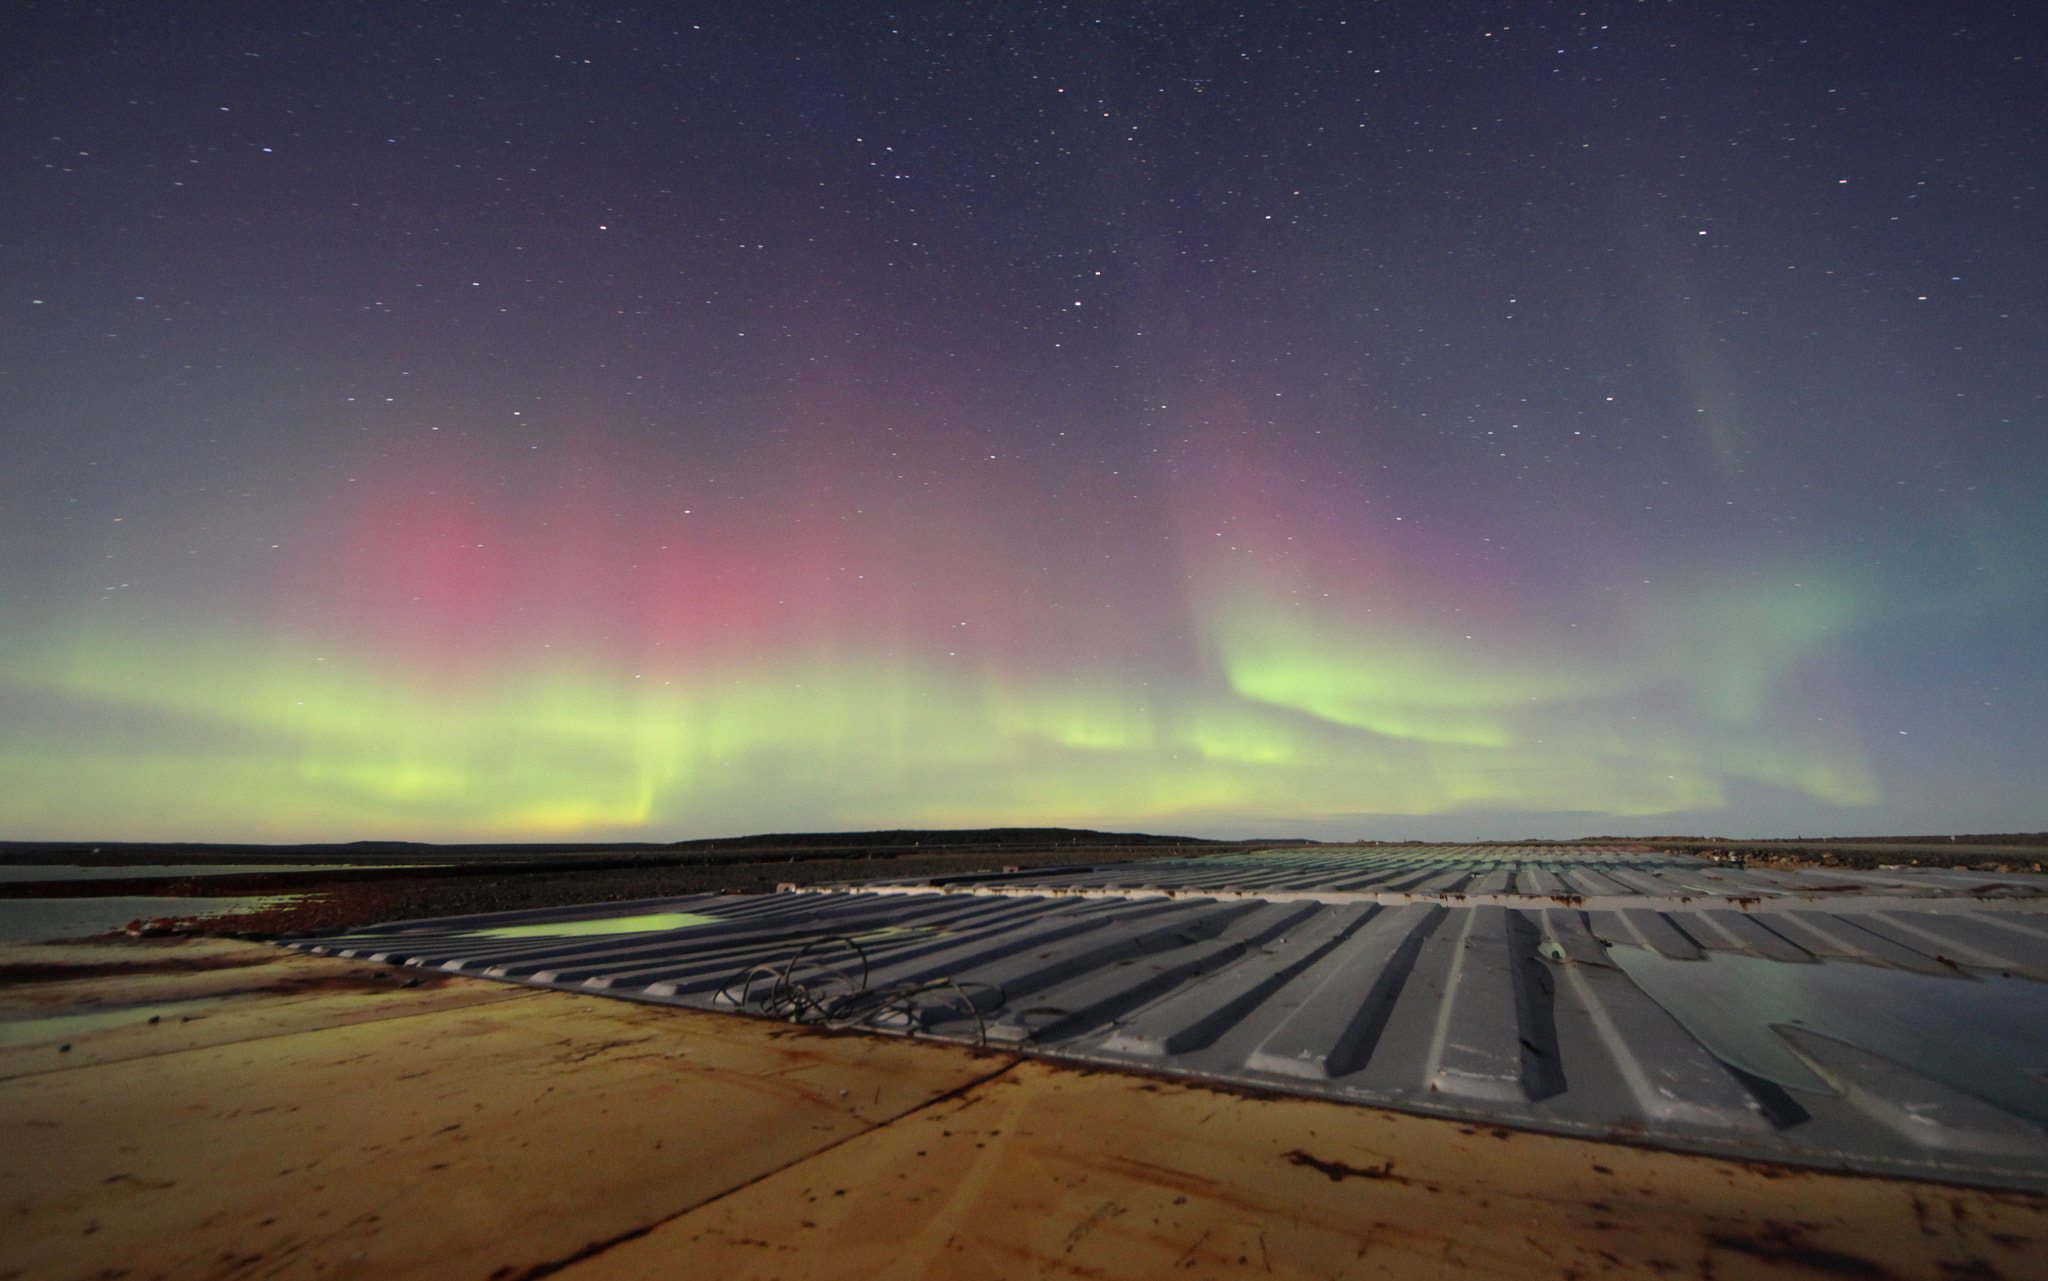 Photograph Containers and northern lights by Benoît Turcotte on 500px